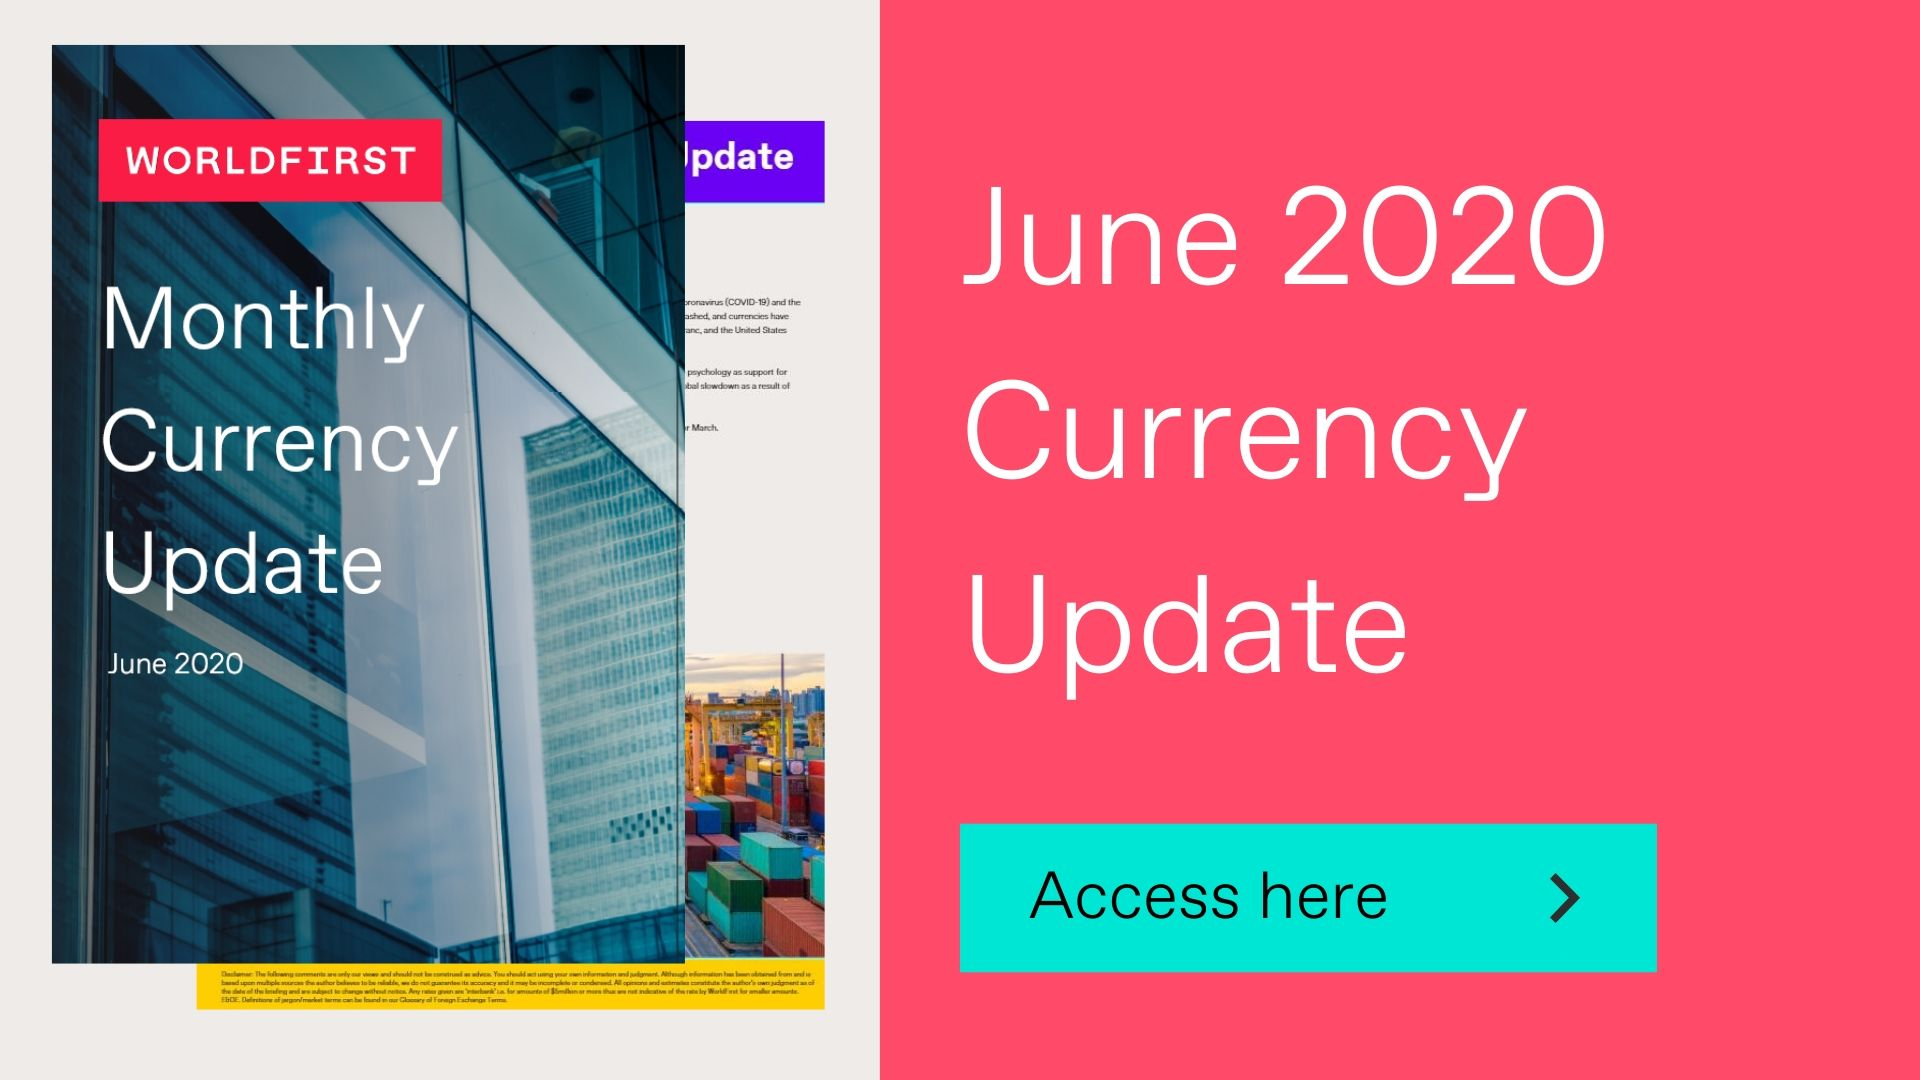 June Currency Update Preview Image